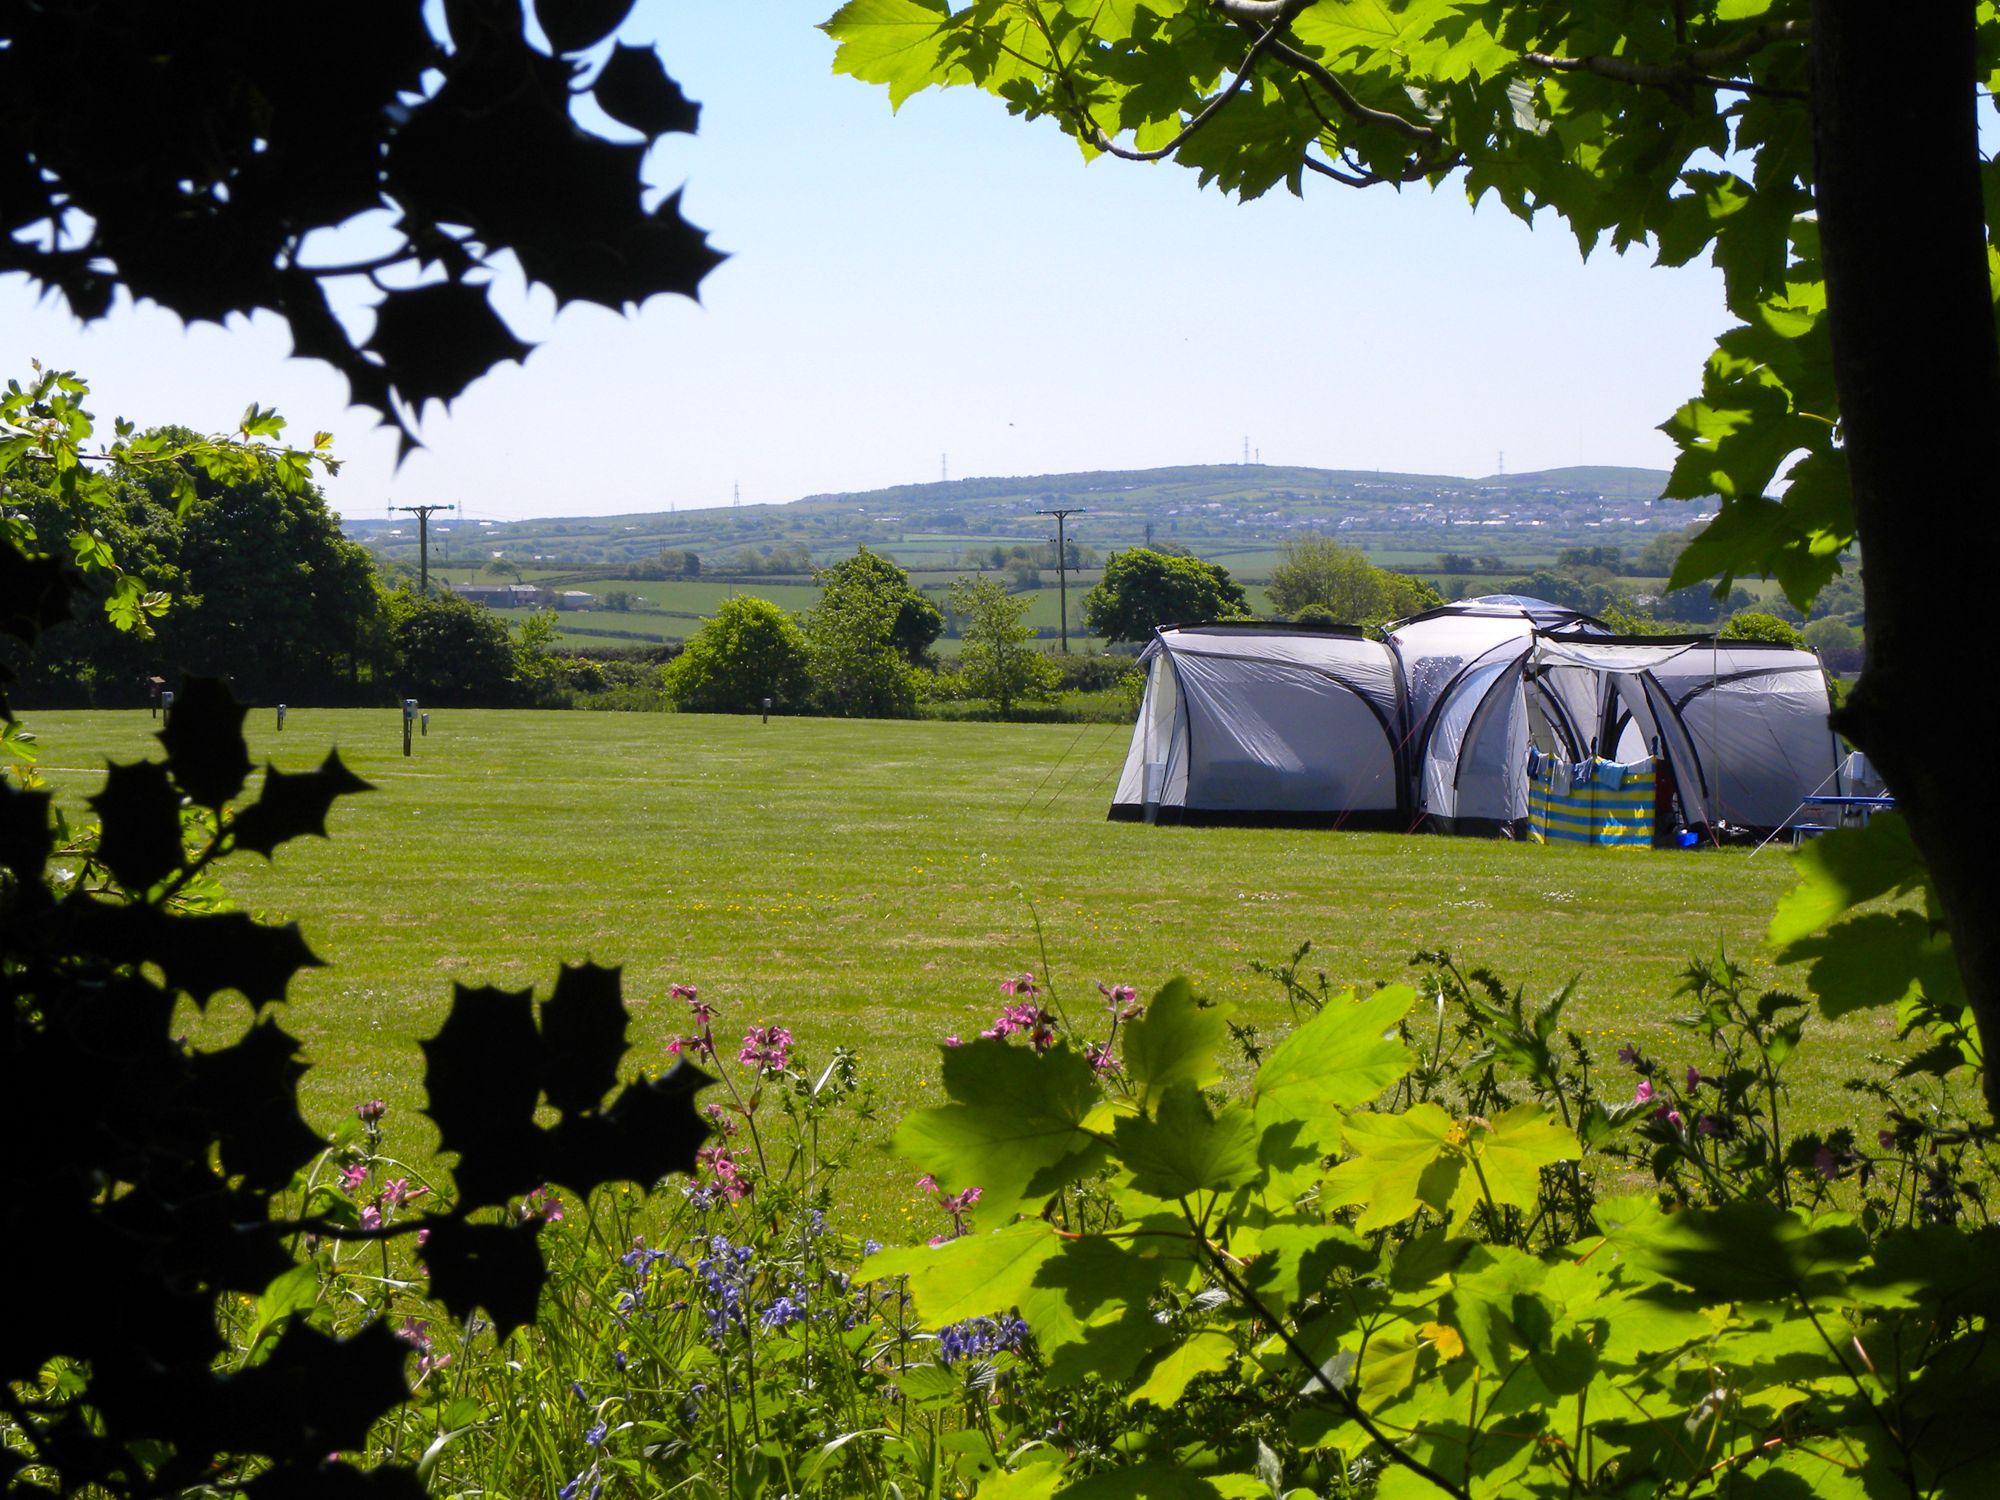 Padstow Camping – Campsites near Padstow, Cornwall